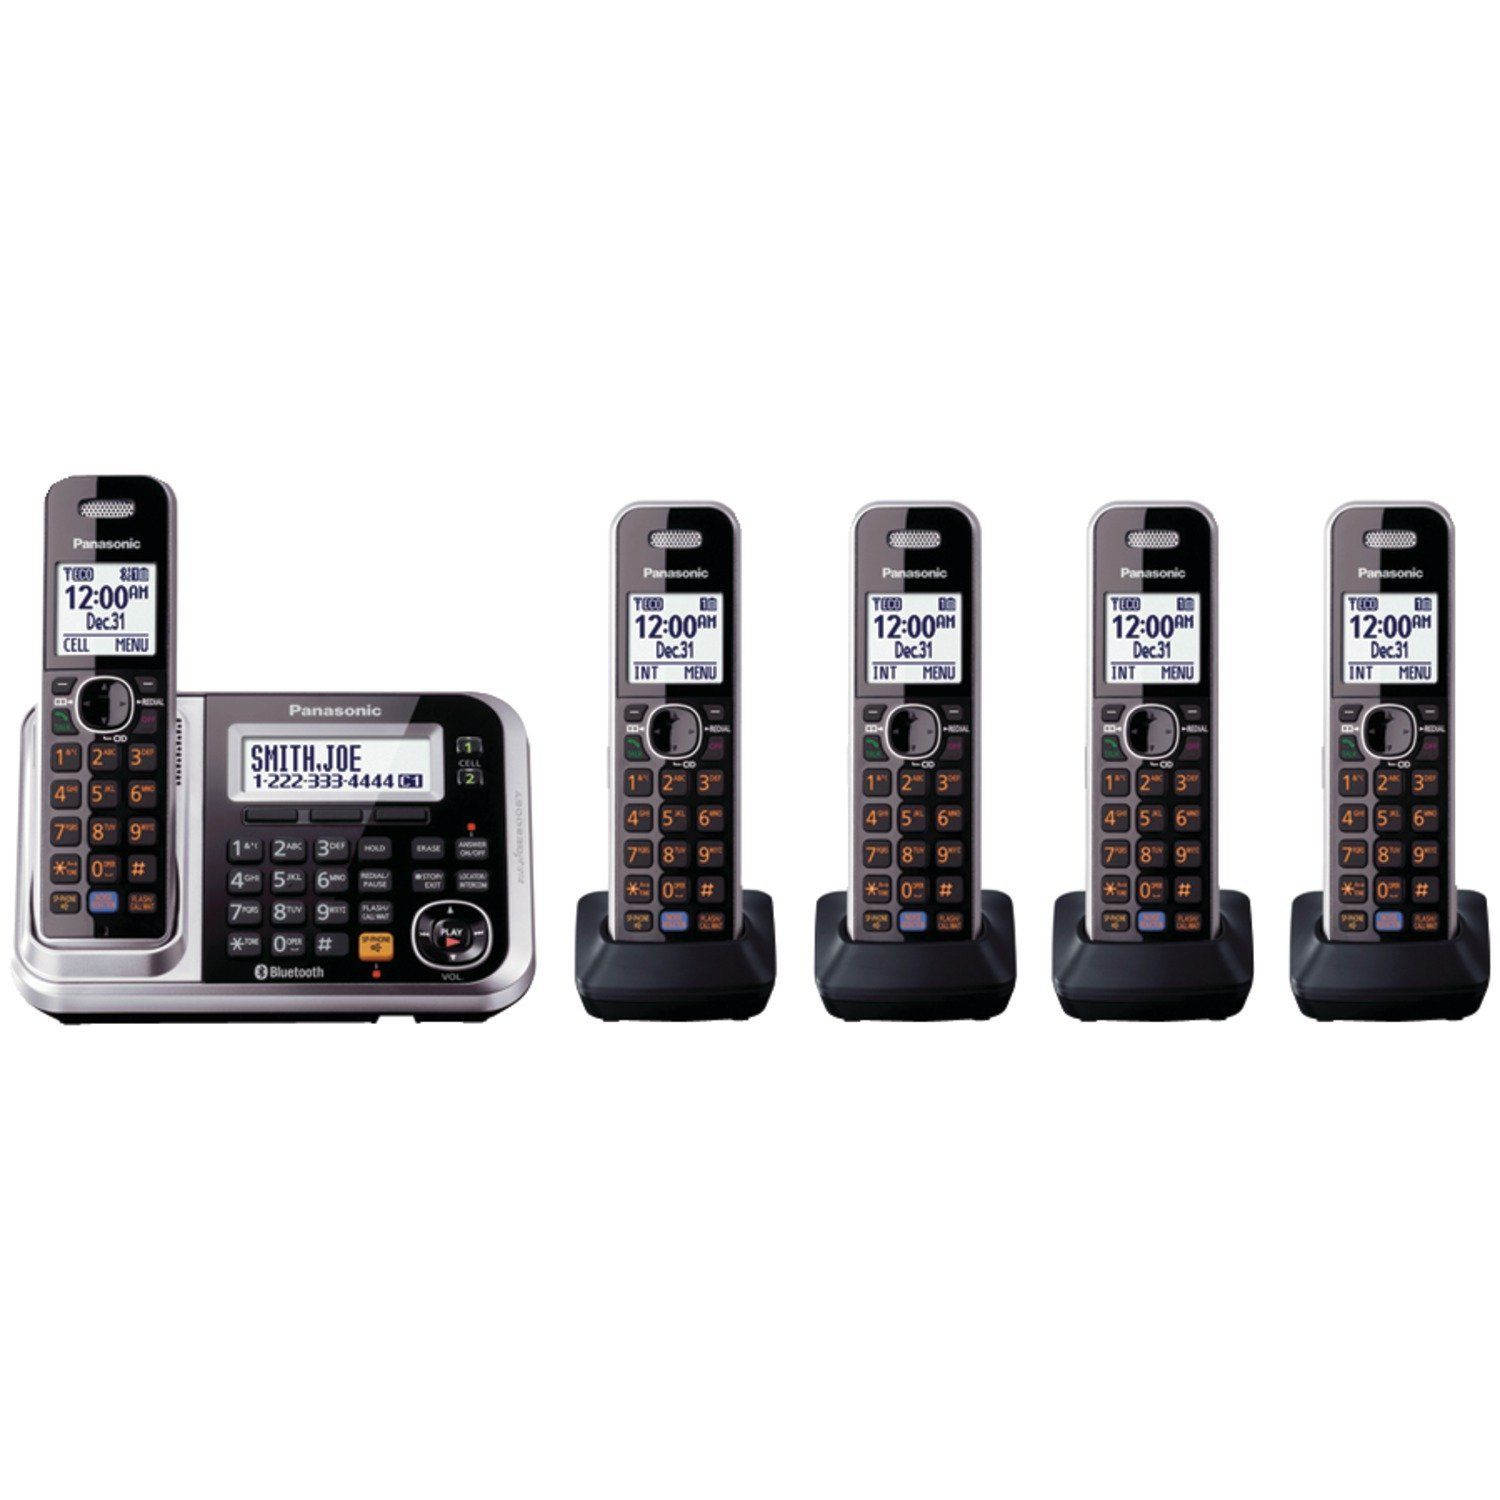 ac28cdecf Panasonic KX-TG7875S Link2Cell Bluetooth Cordless Phone with Enhanced Noise  Reduction   Digital Answering Machine - 5 Handsets